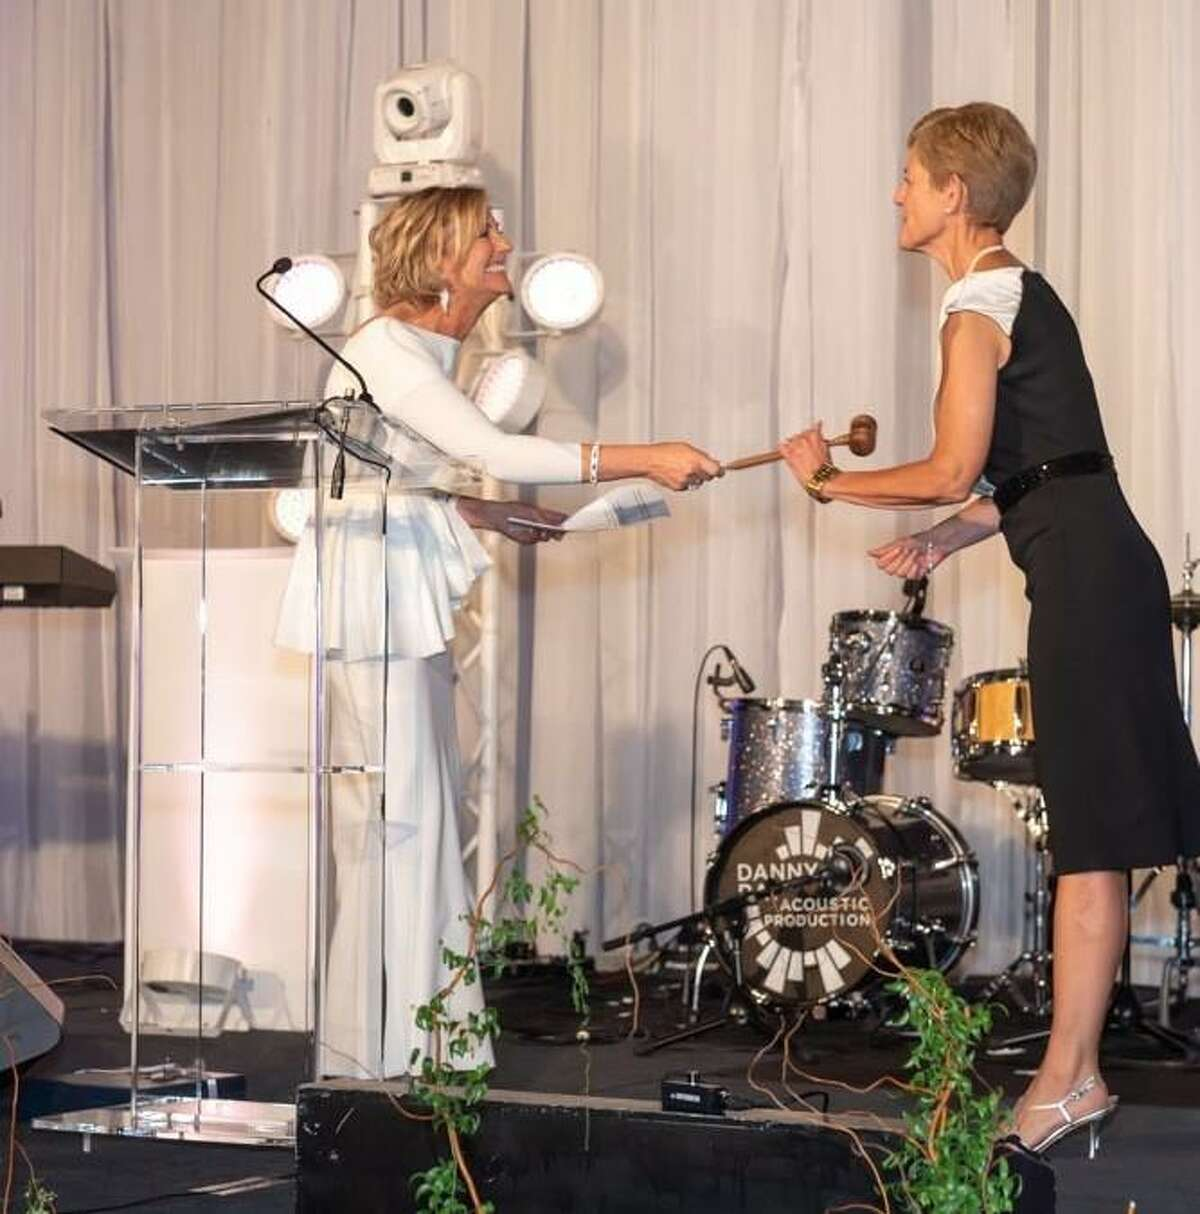 The Woodlands Area Chamber of Commerce held its 43rd Annual Chairman's Ball Saturday night at The Woodlands Waterway Marriott Hotel & Convention Center. Jeff Garrett and Linda Nelson were celebrated as the outgoing chairman. Julie Ambler was welcomed as the incoming chairman of the Chamber. Nelson is pictured handing over the gavel to Amber at Saturday's ball.